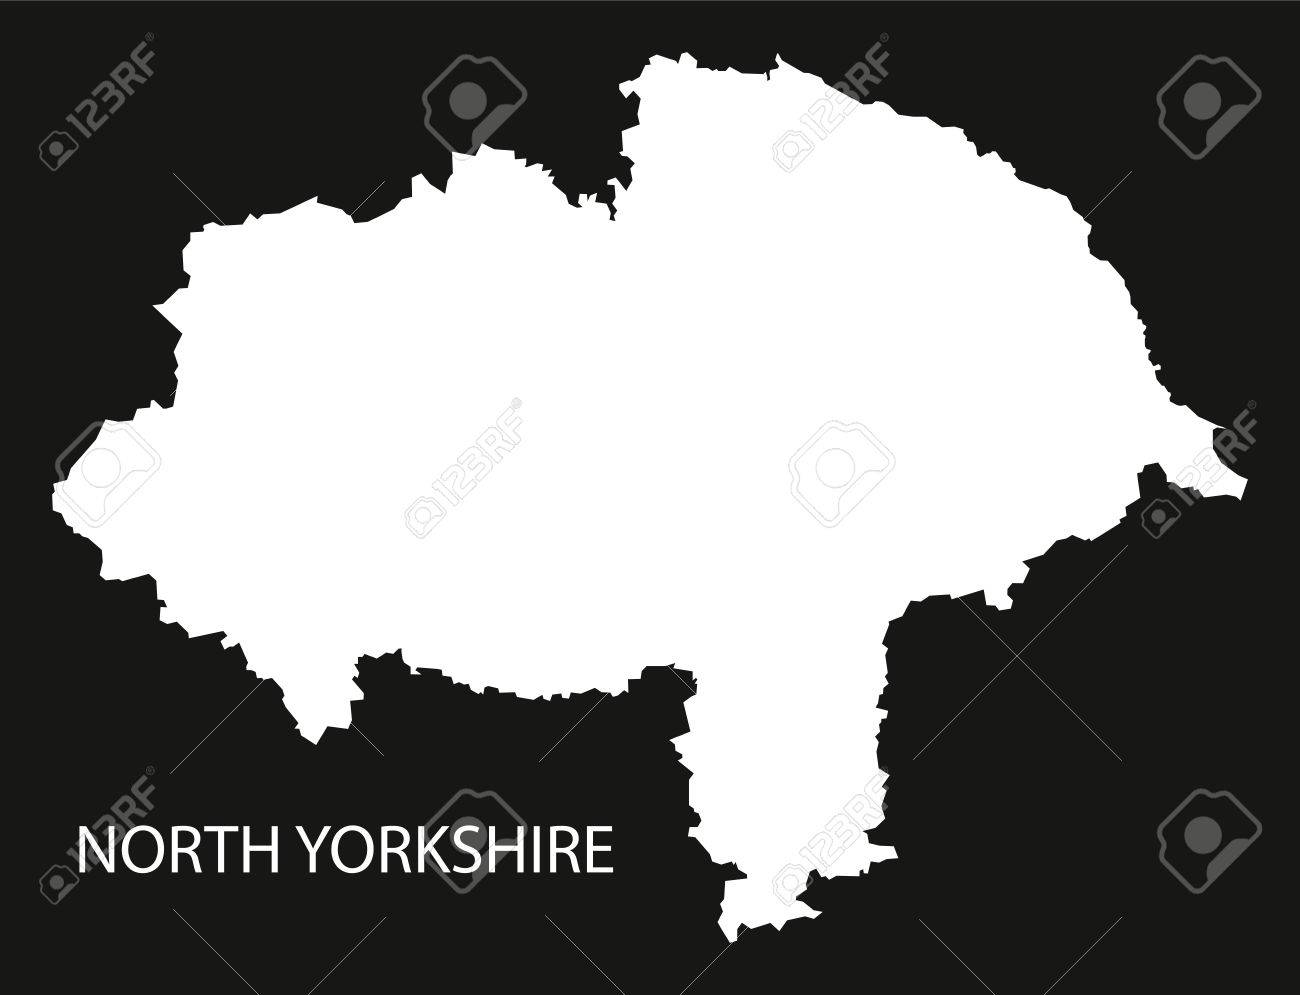 North Yorkshire England Uk Map Black Inverted Silhouette